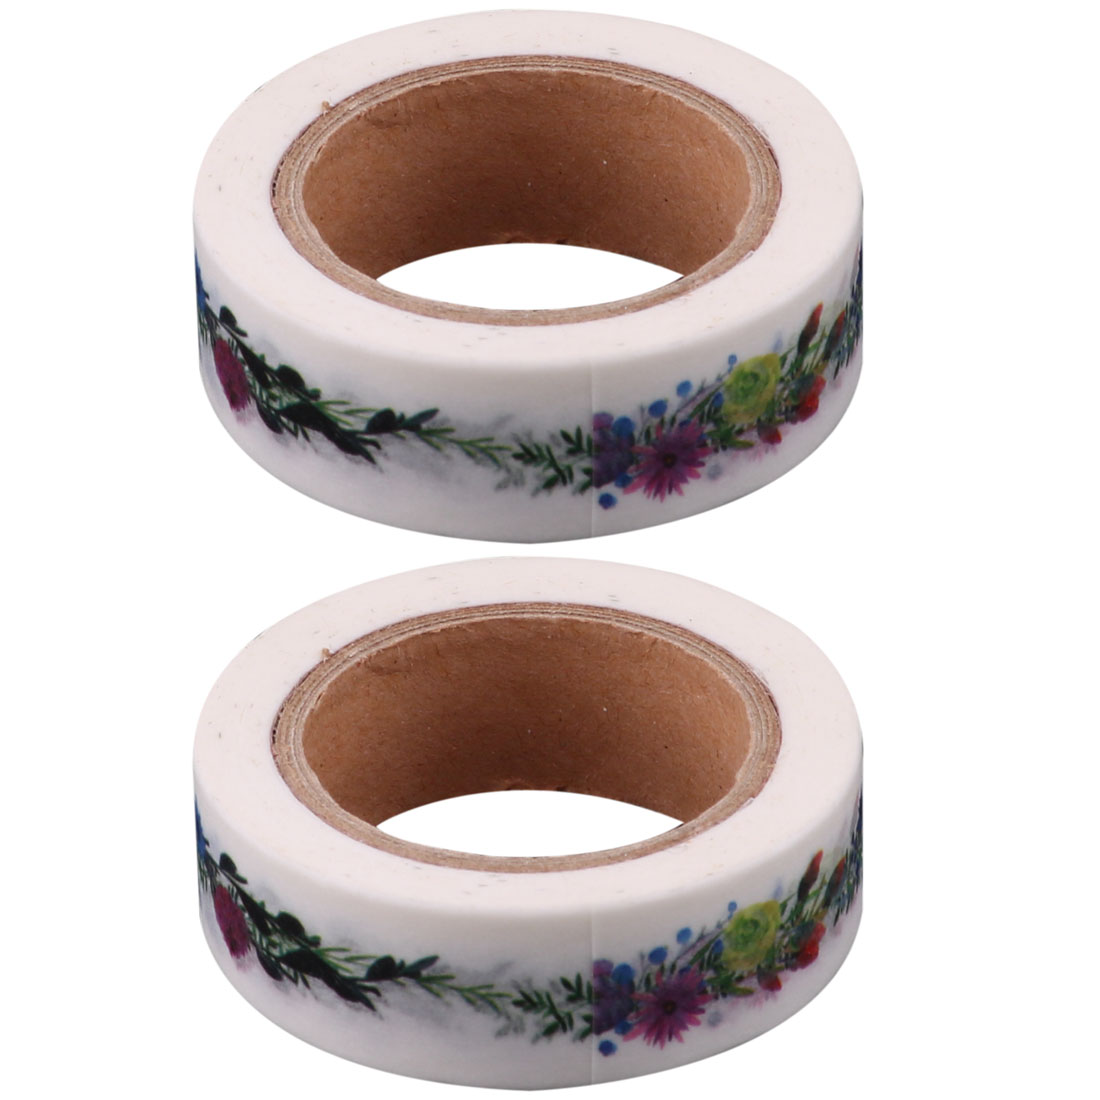 Student Washi Paper Flower Vine Print Parcel Sticker DIY Tape 1.5cm Width 2pcs